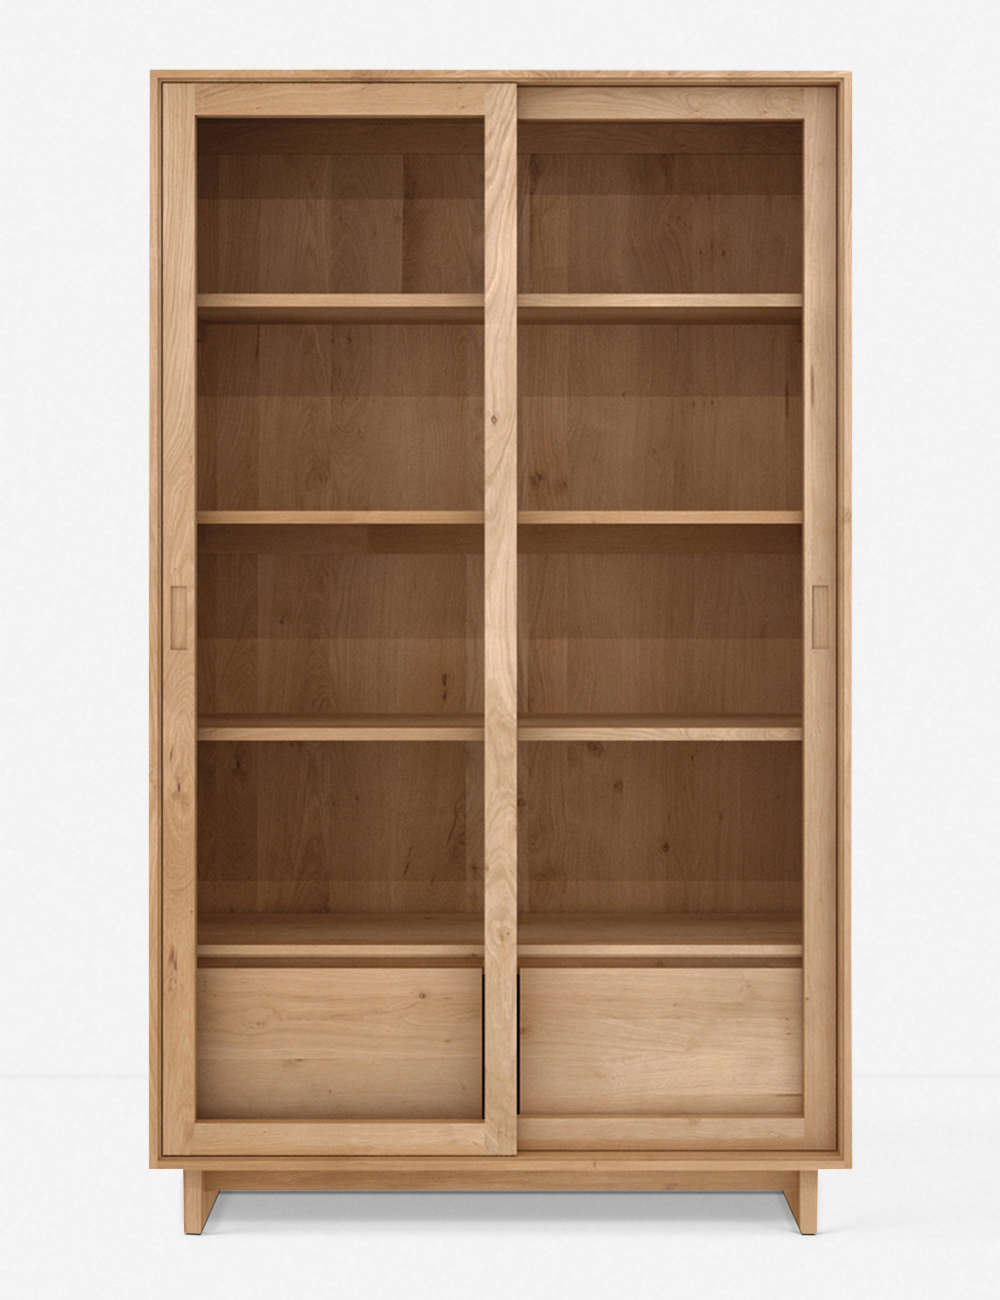 Cutout Details Make The Drawers On This Bookshelf Pop Creating